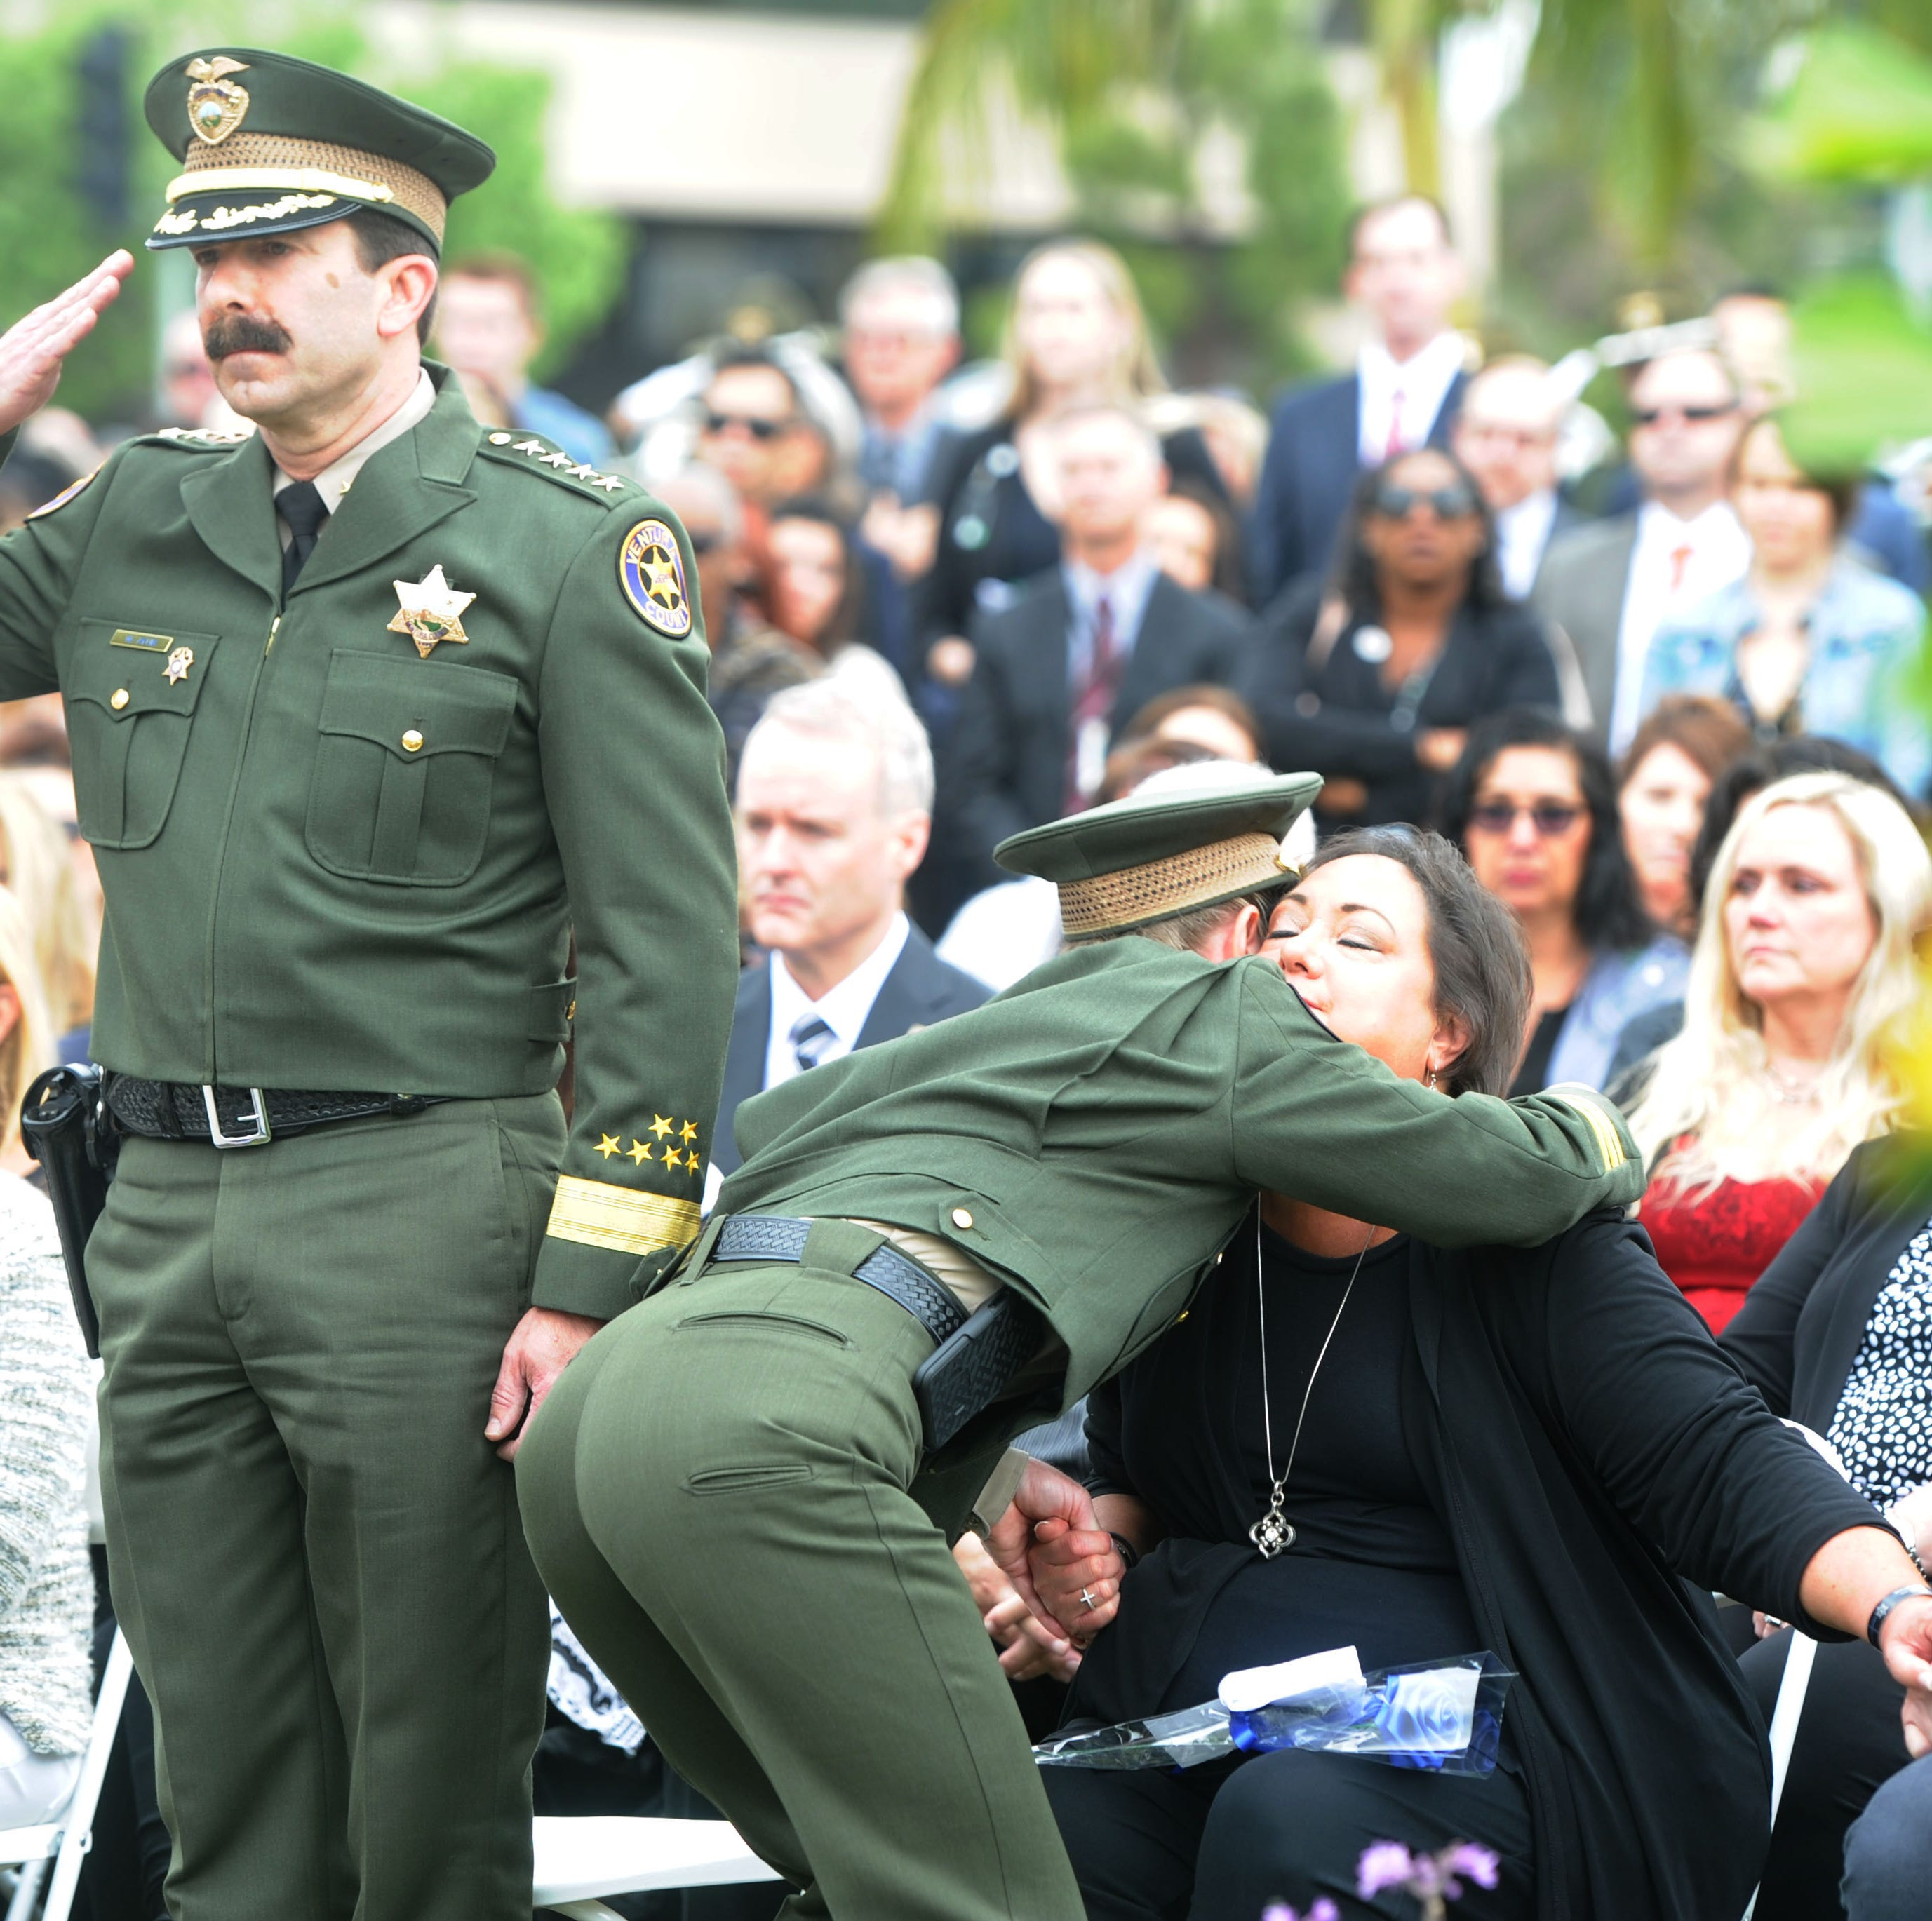 Sergeant killed in Borderline shooting, 32 others honored at annual peace officer memorial